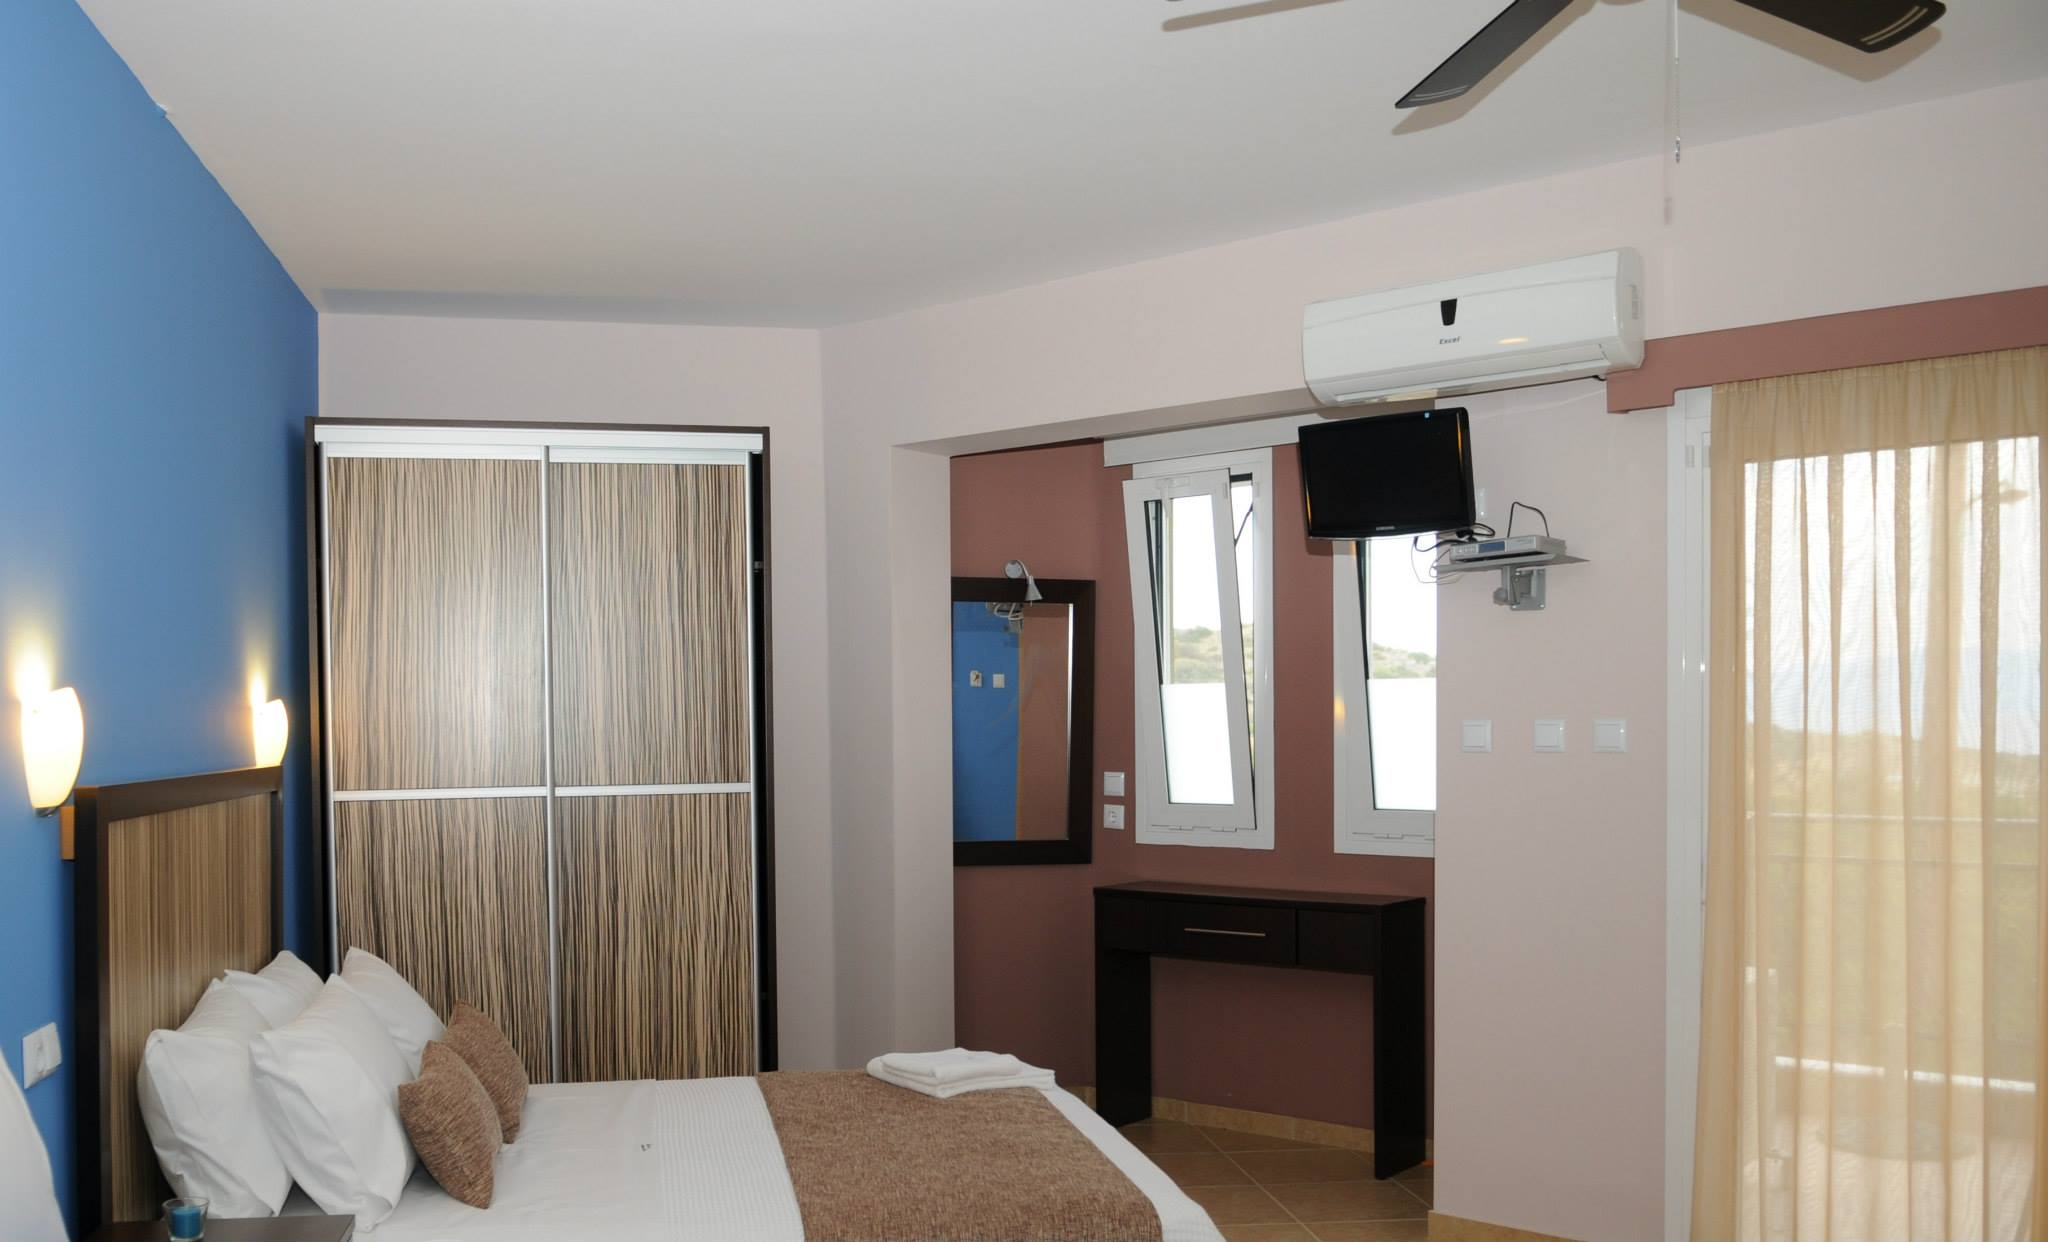 greenotel studios apartments sarti sithonia studio no. 3 (2)